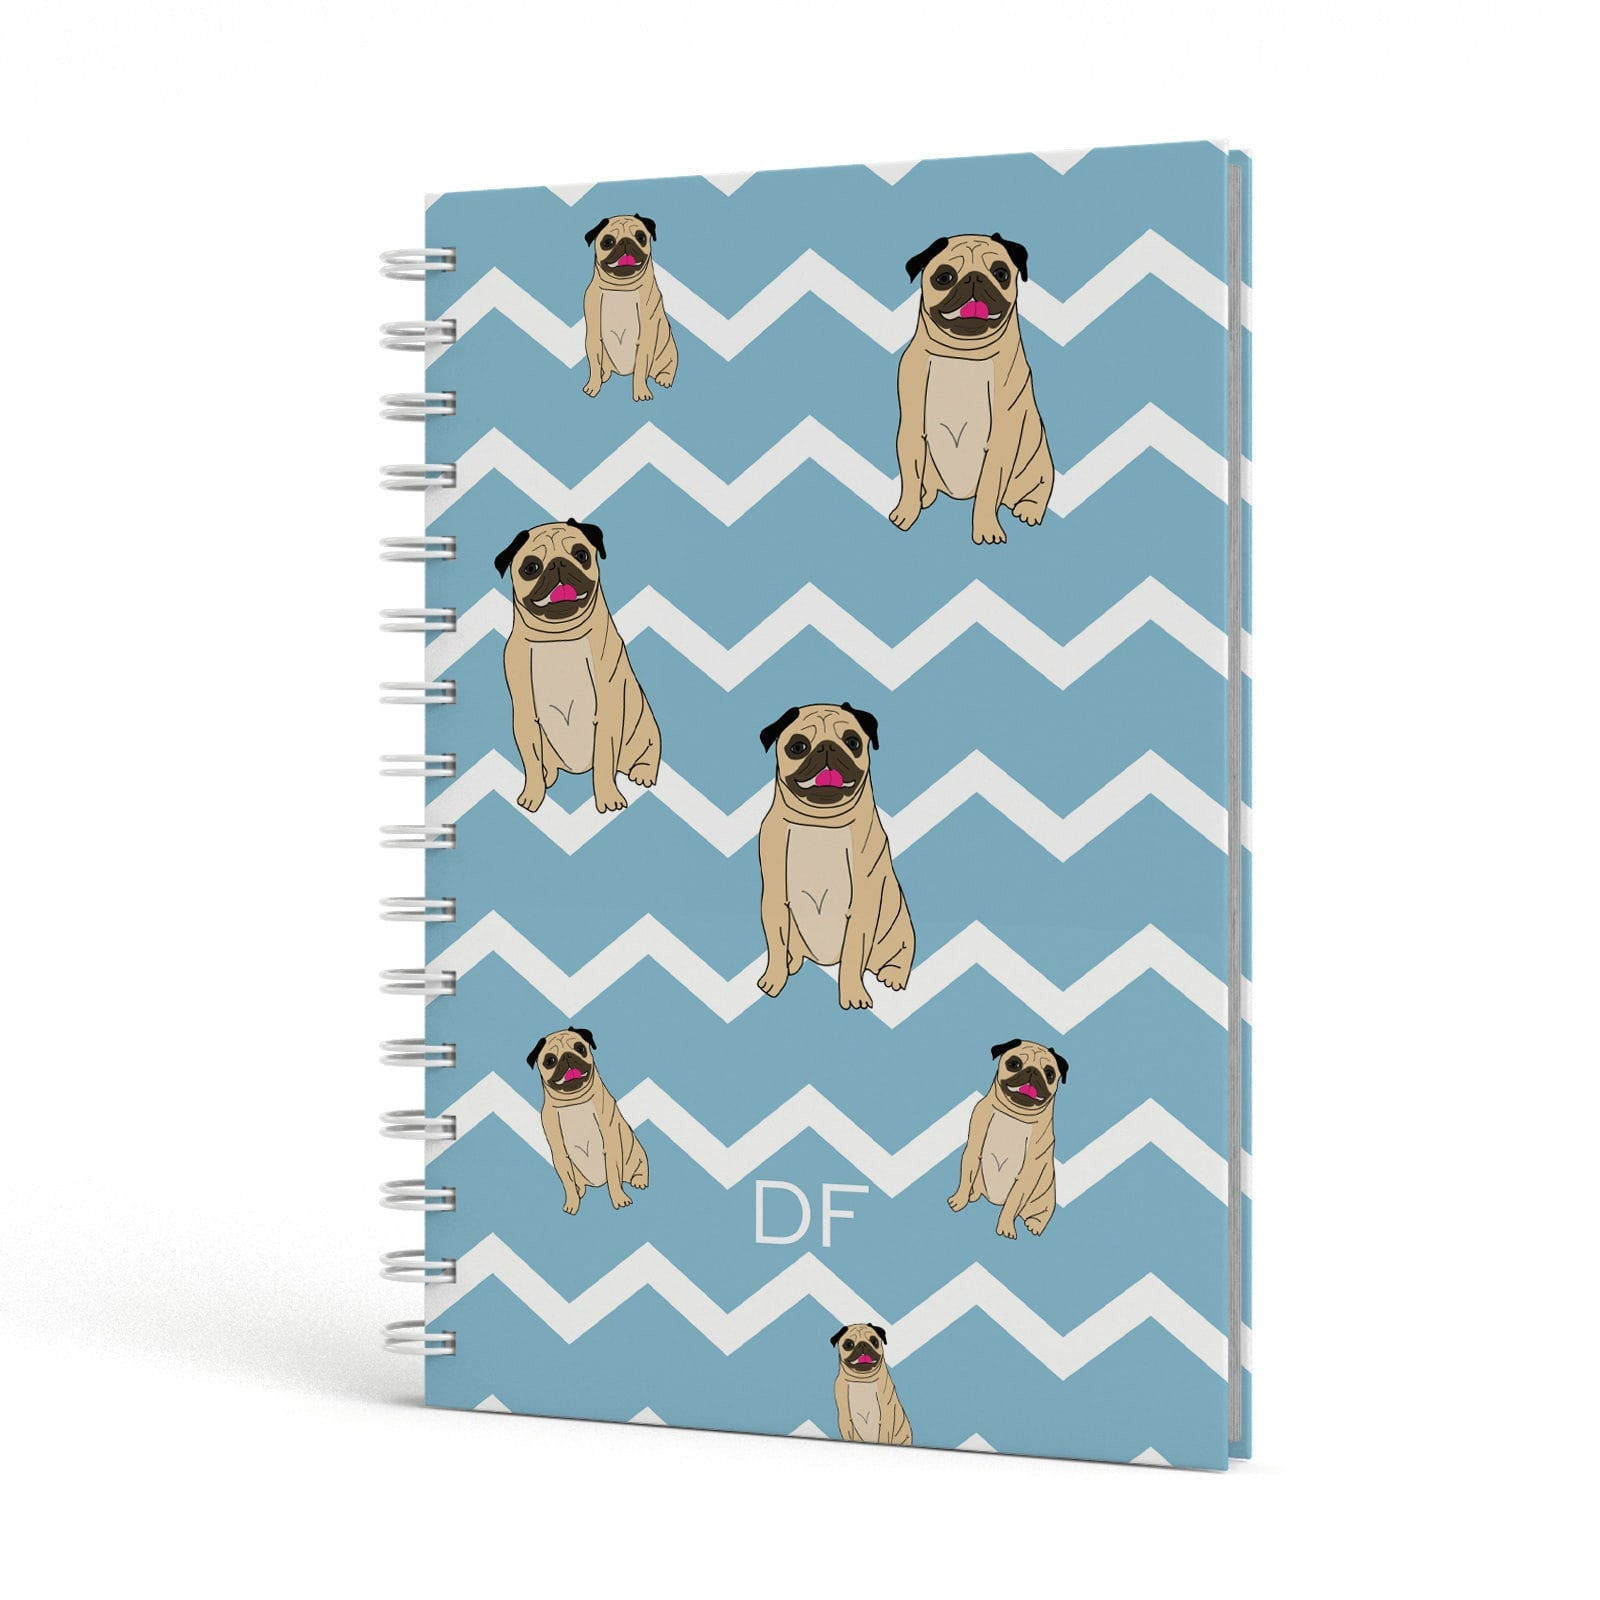 Personalised Pug Initials A5 Hardcover Notebook Side View